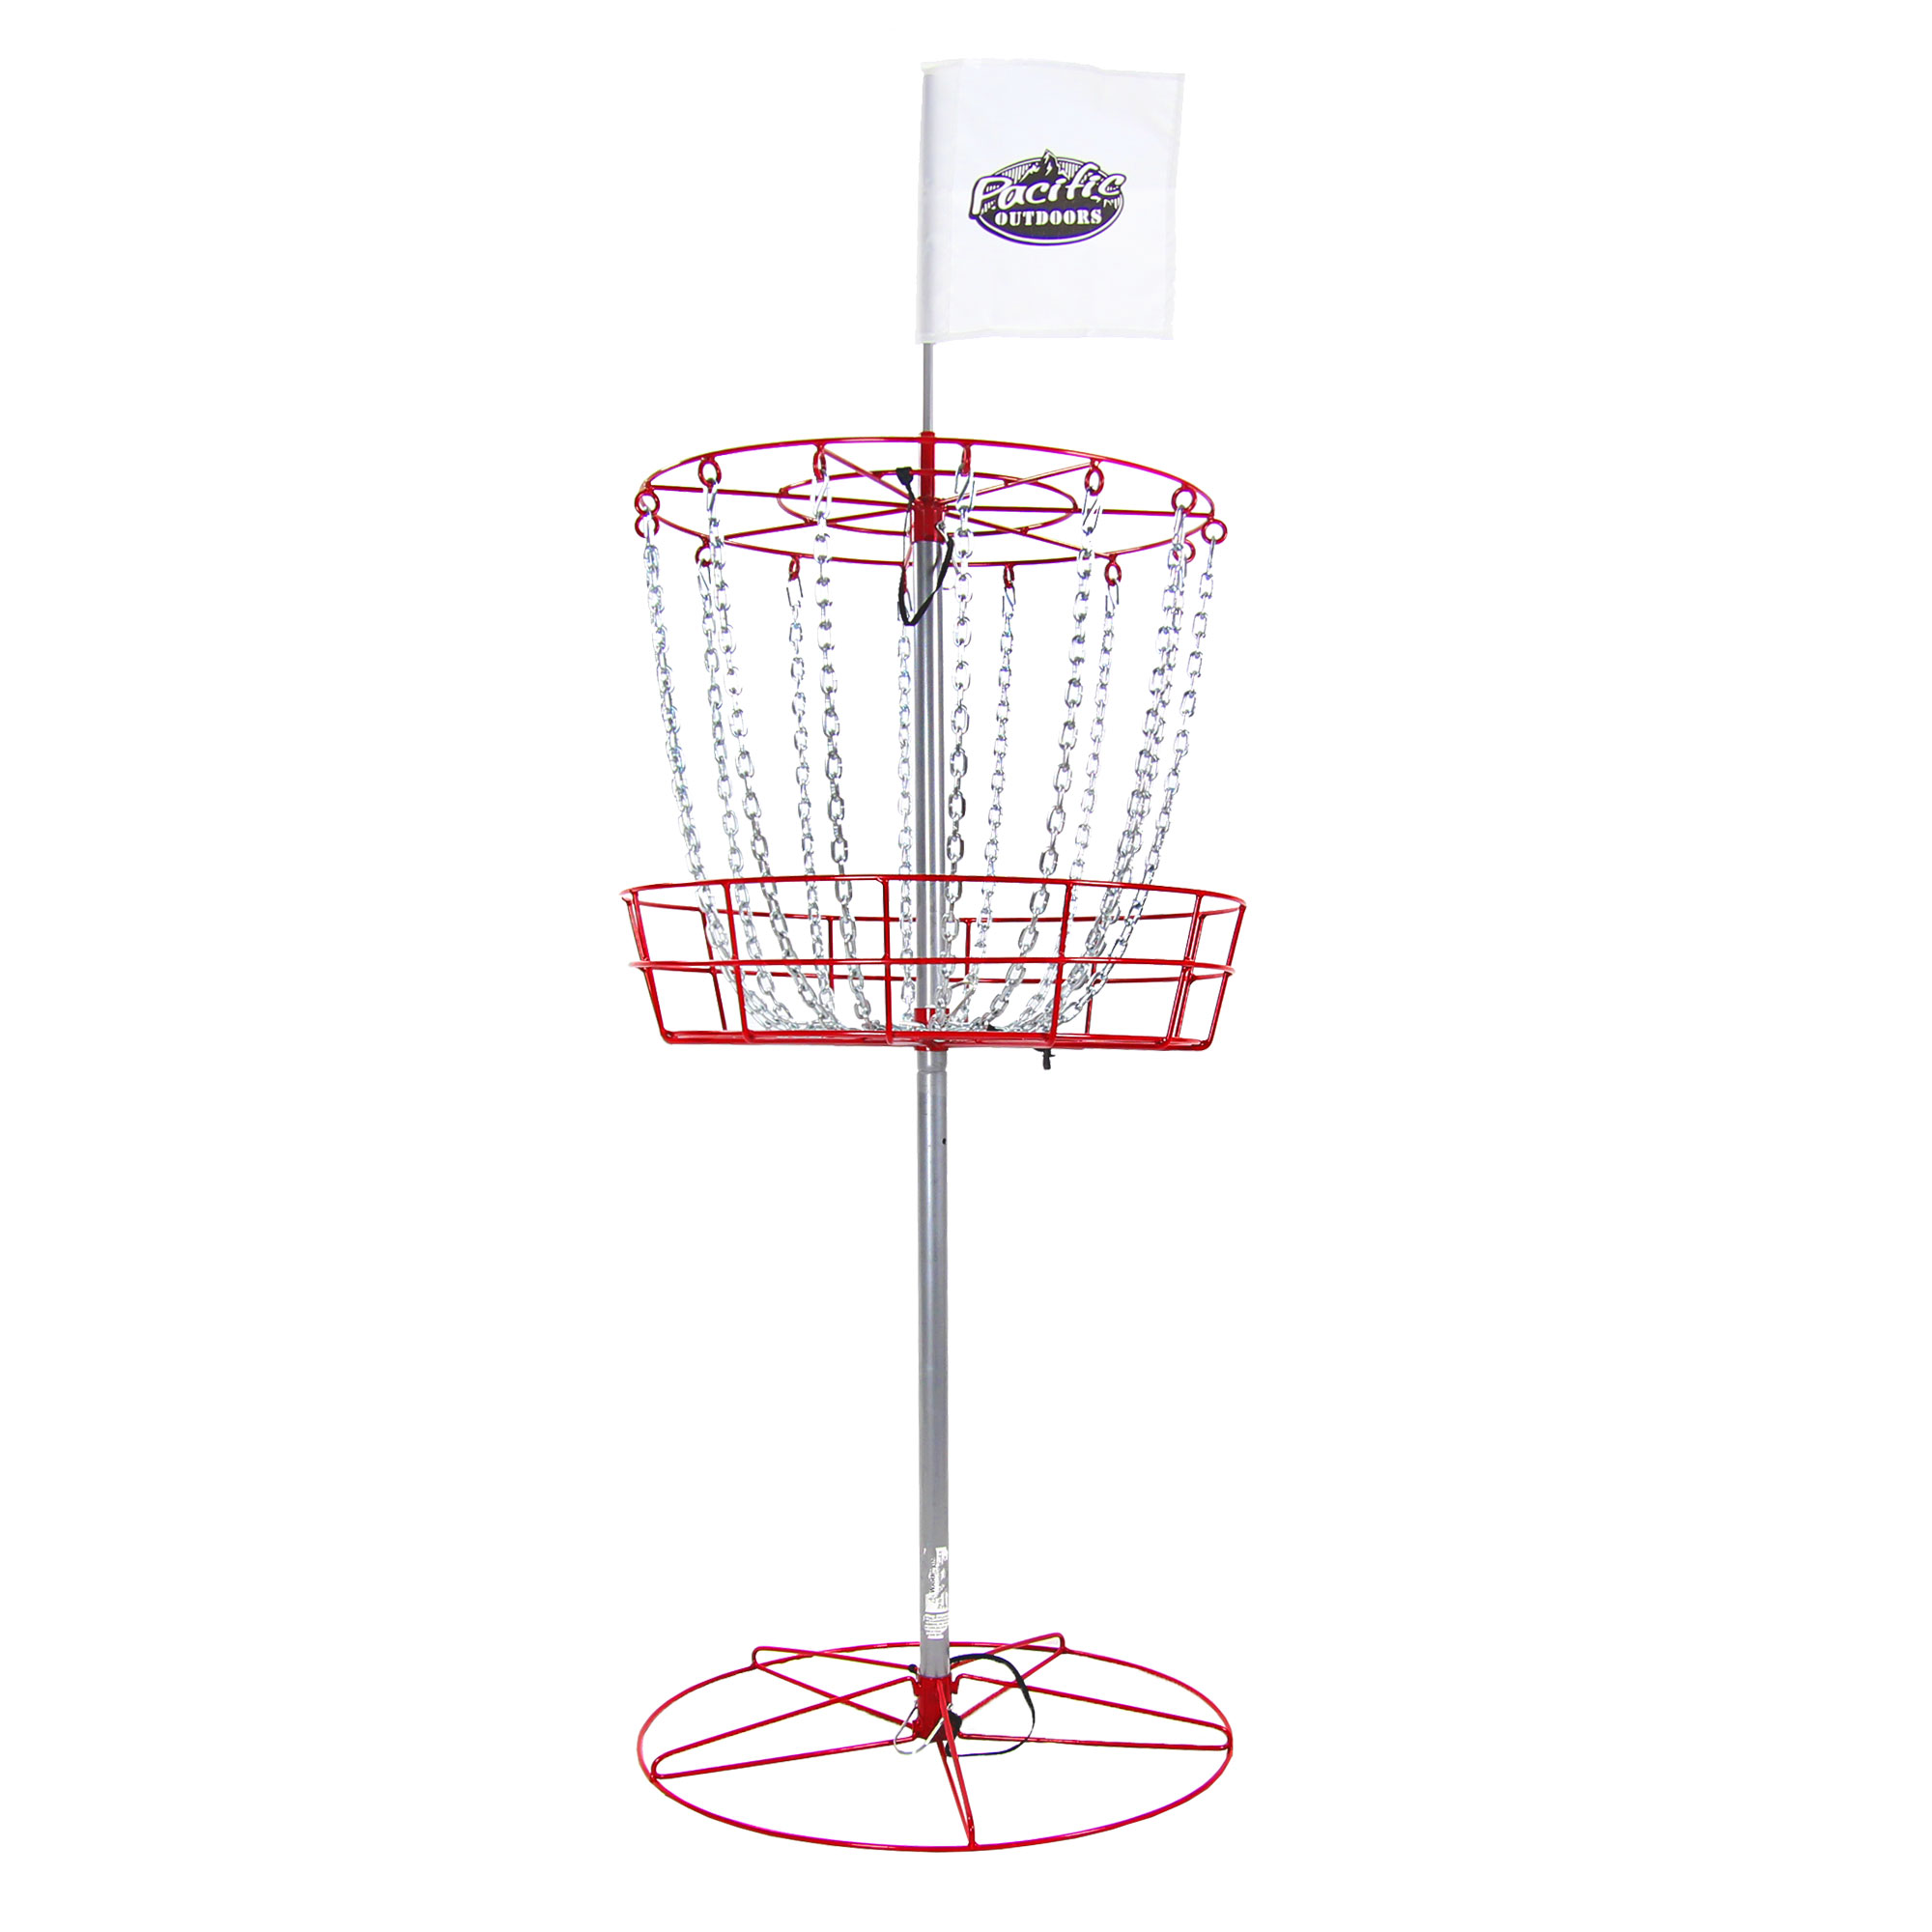 New InSTEP Disc Golf Basket Target Goal & 3 Discs DG200 by